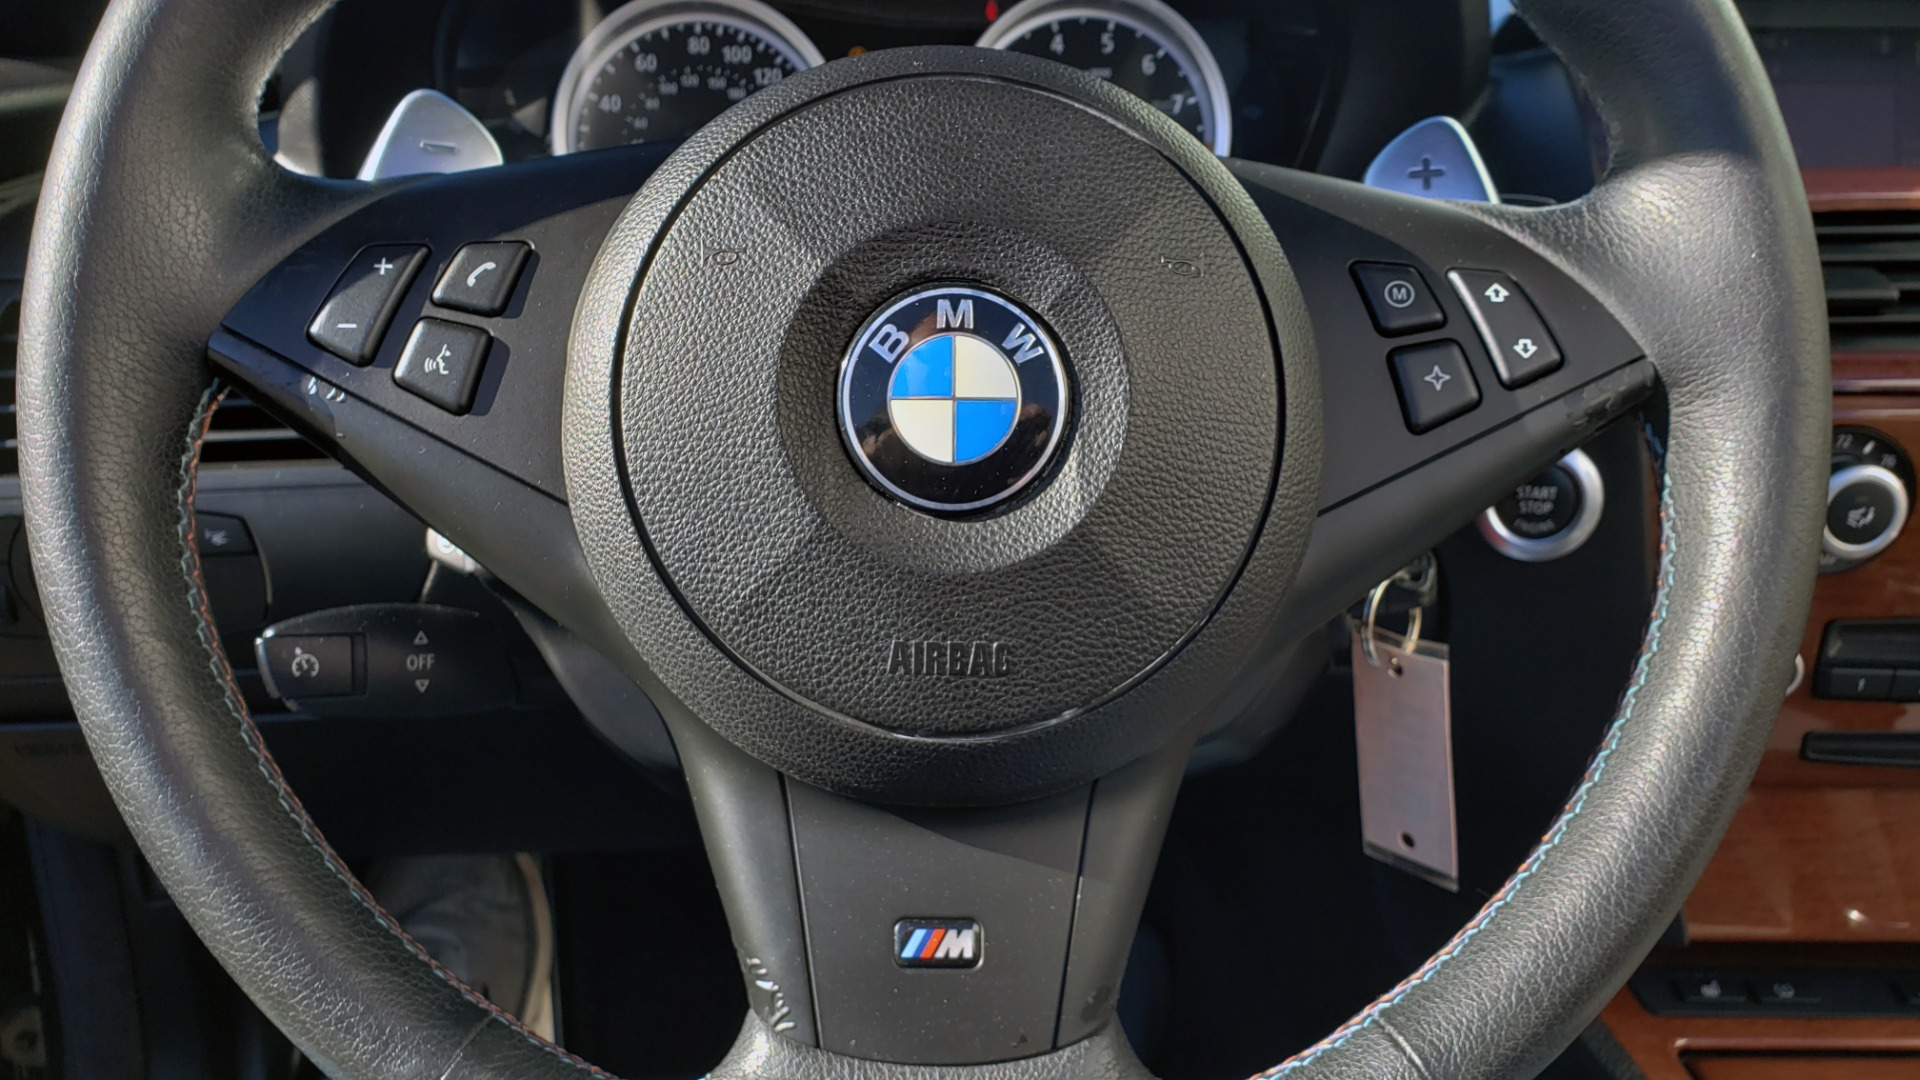 Used 2009 BMW M6 CONVERTIBLE / 5.0L V10 (500HP) / PREM SND / HUD / 19IN WHEELS for sale $24,999 at Formula Imports in Charlotte NC 28227 21